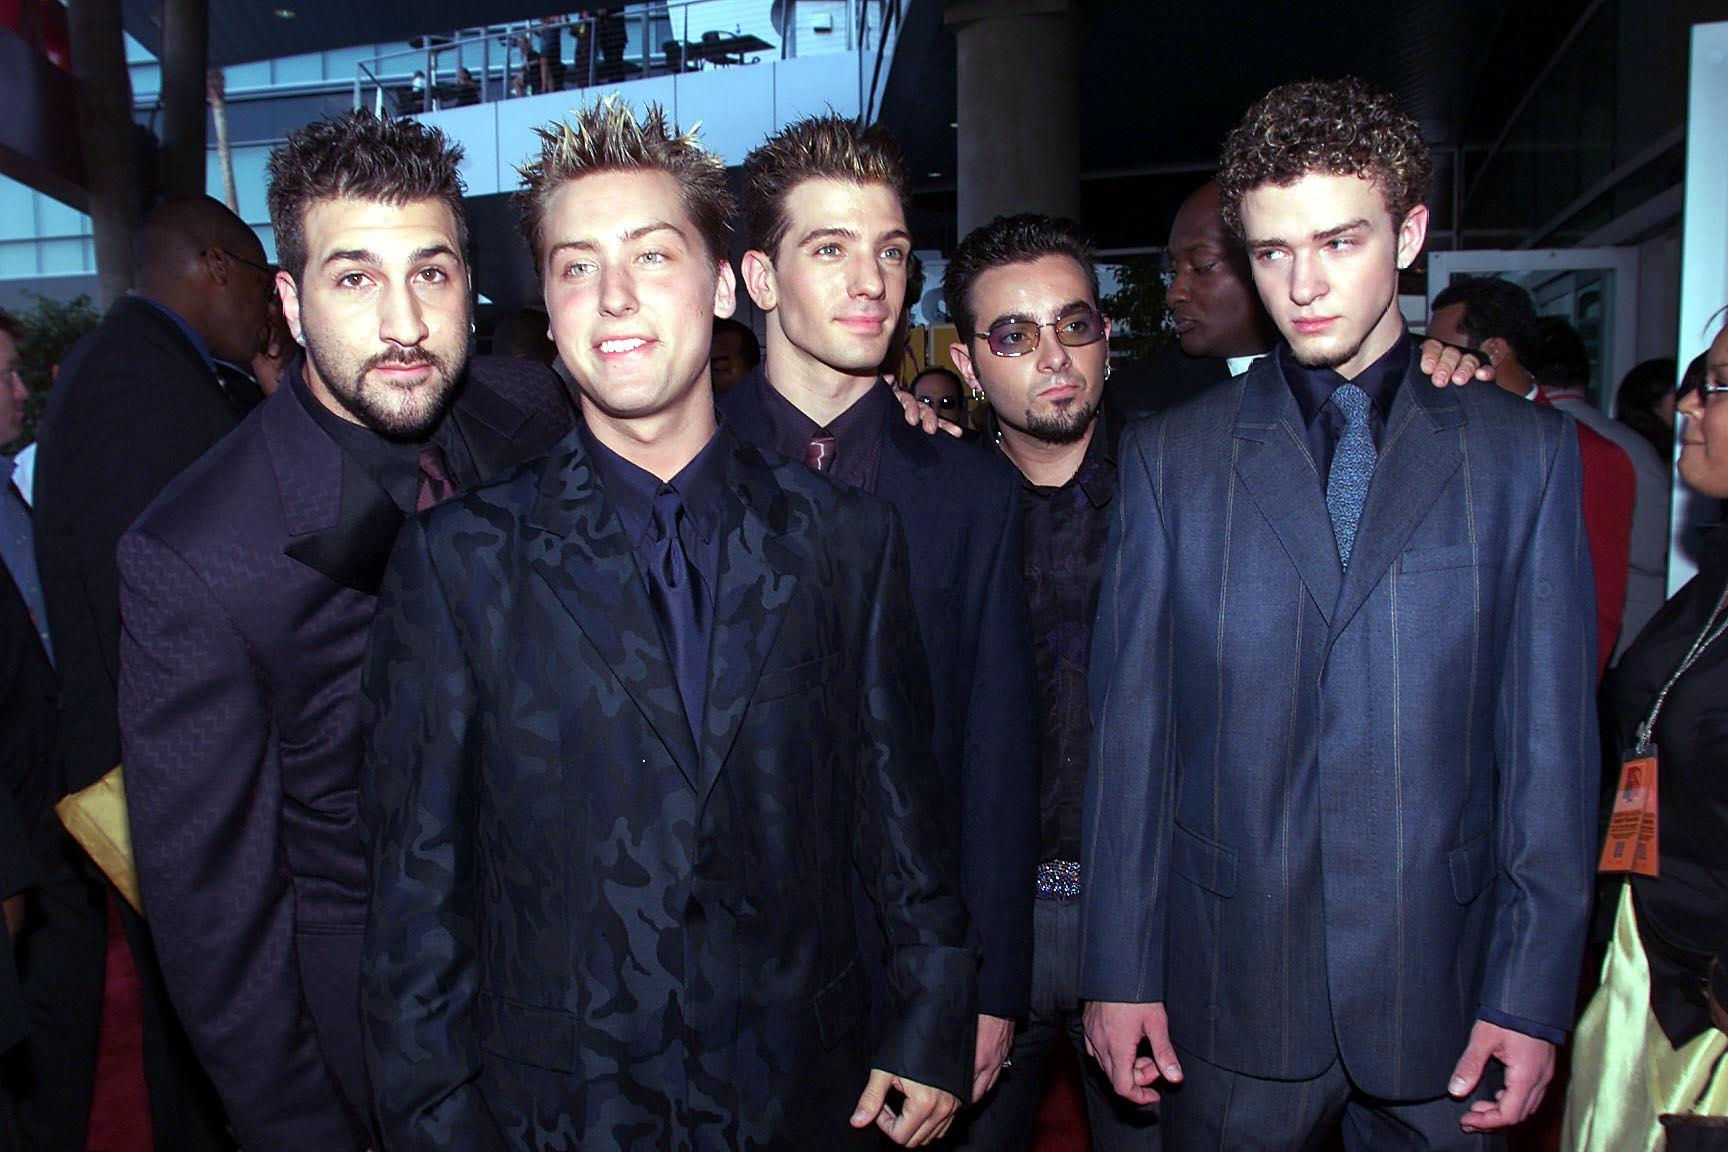 nsyncs home for christmas will forever be a glorious pop xmas album - Nsync Christmas Album